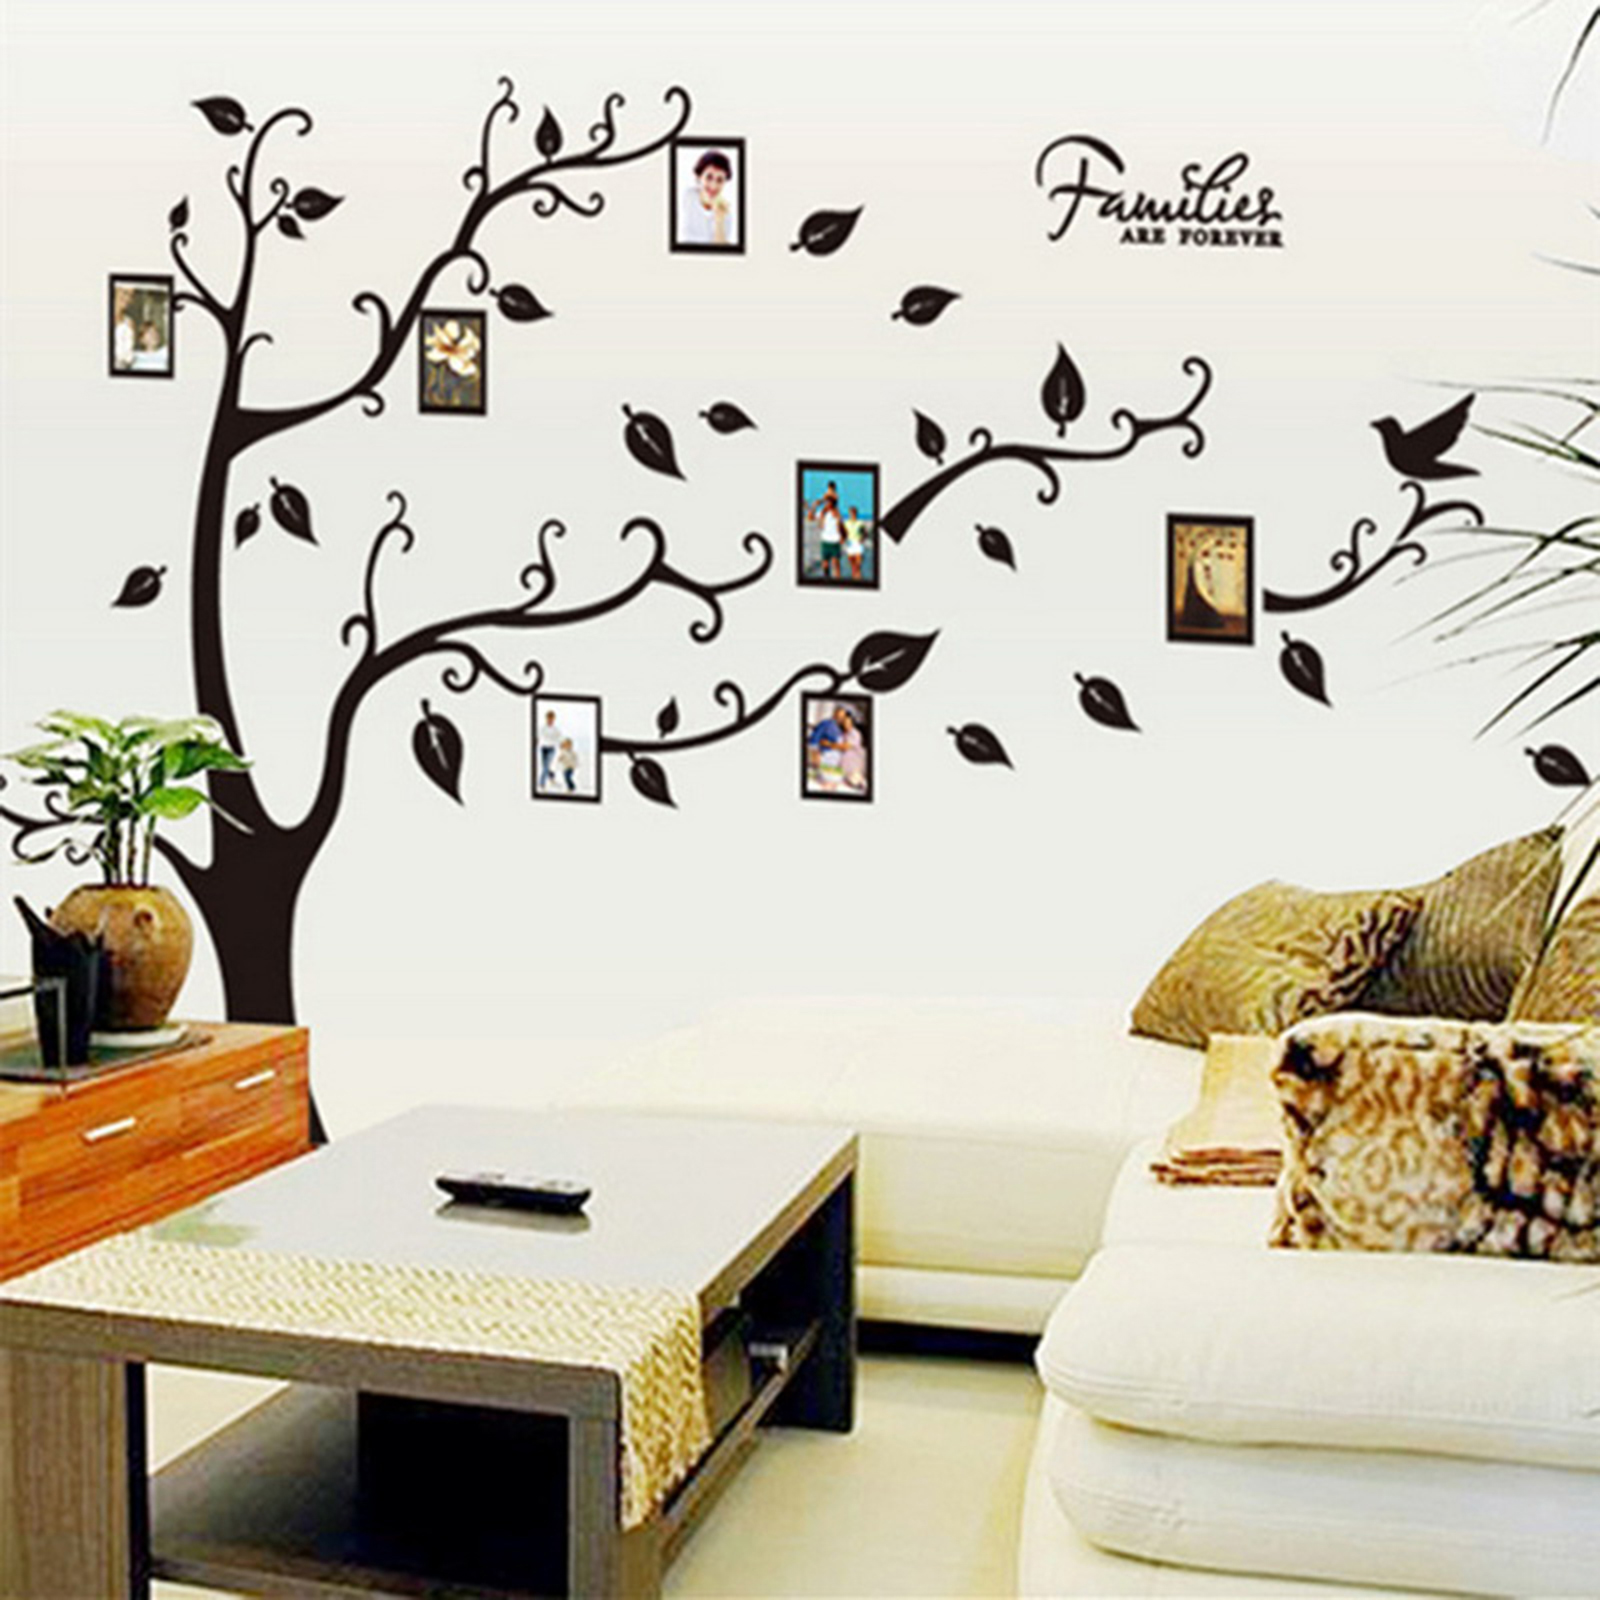 Modern Mirror Style Removable Decal Art Mural Wall Sticker Home Room ...